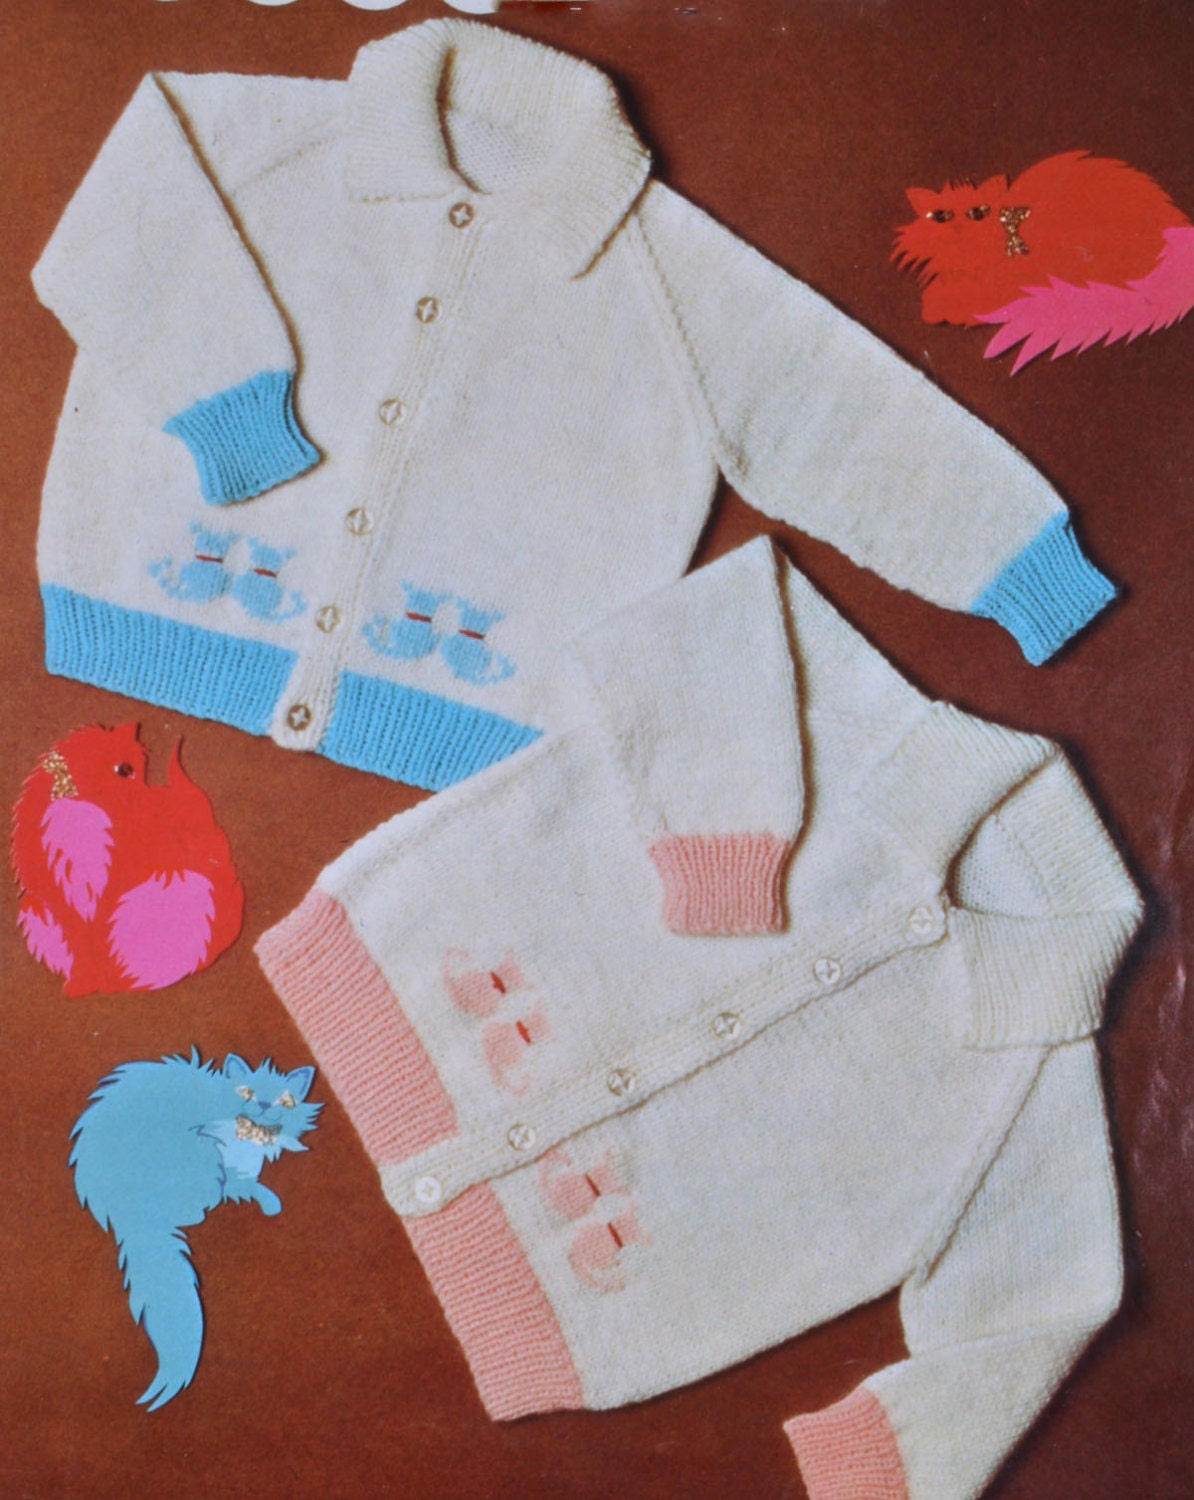 71c53fb2be3b Baby cardigan knit pattern intage knitting pattern cute kitten cat sizes 18  to 23 inches pdf INSTANT download pattern only from TheVintageWorkbox on  Etsy ...